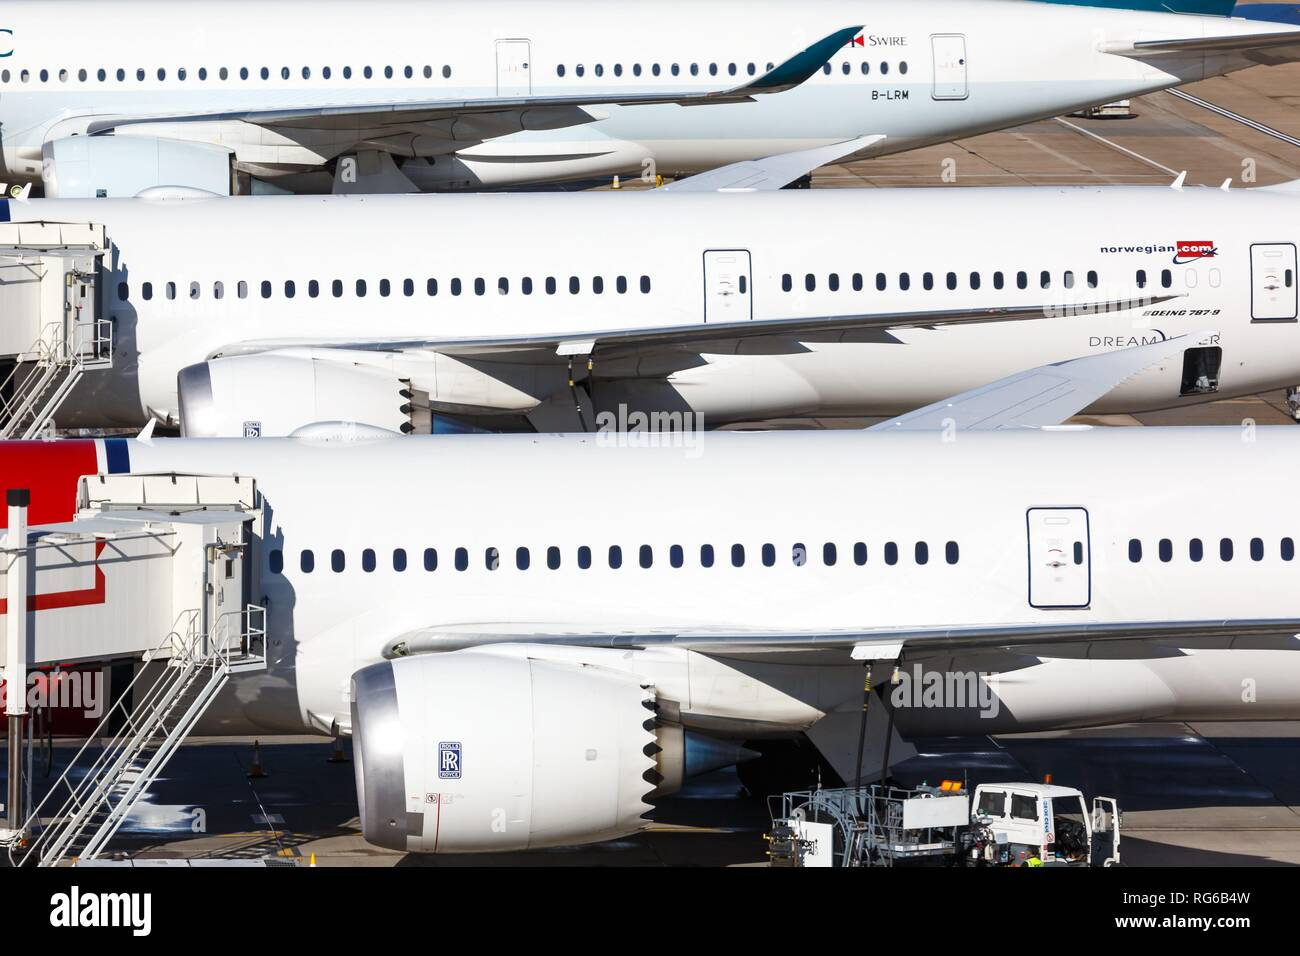 London, United Kingdom - July 31, 2018: Airplanes at London Gatwick airport (LGW) in the United Kingdom. | usage worldwide - Stock Image